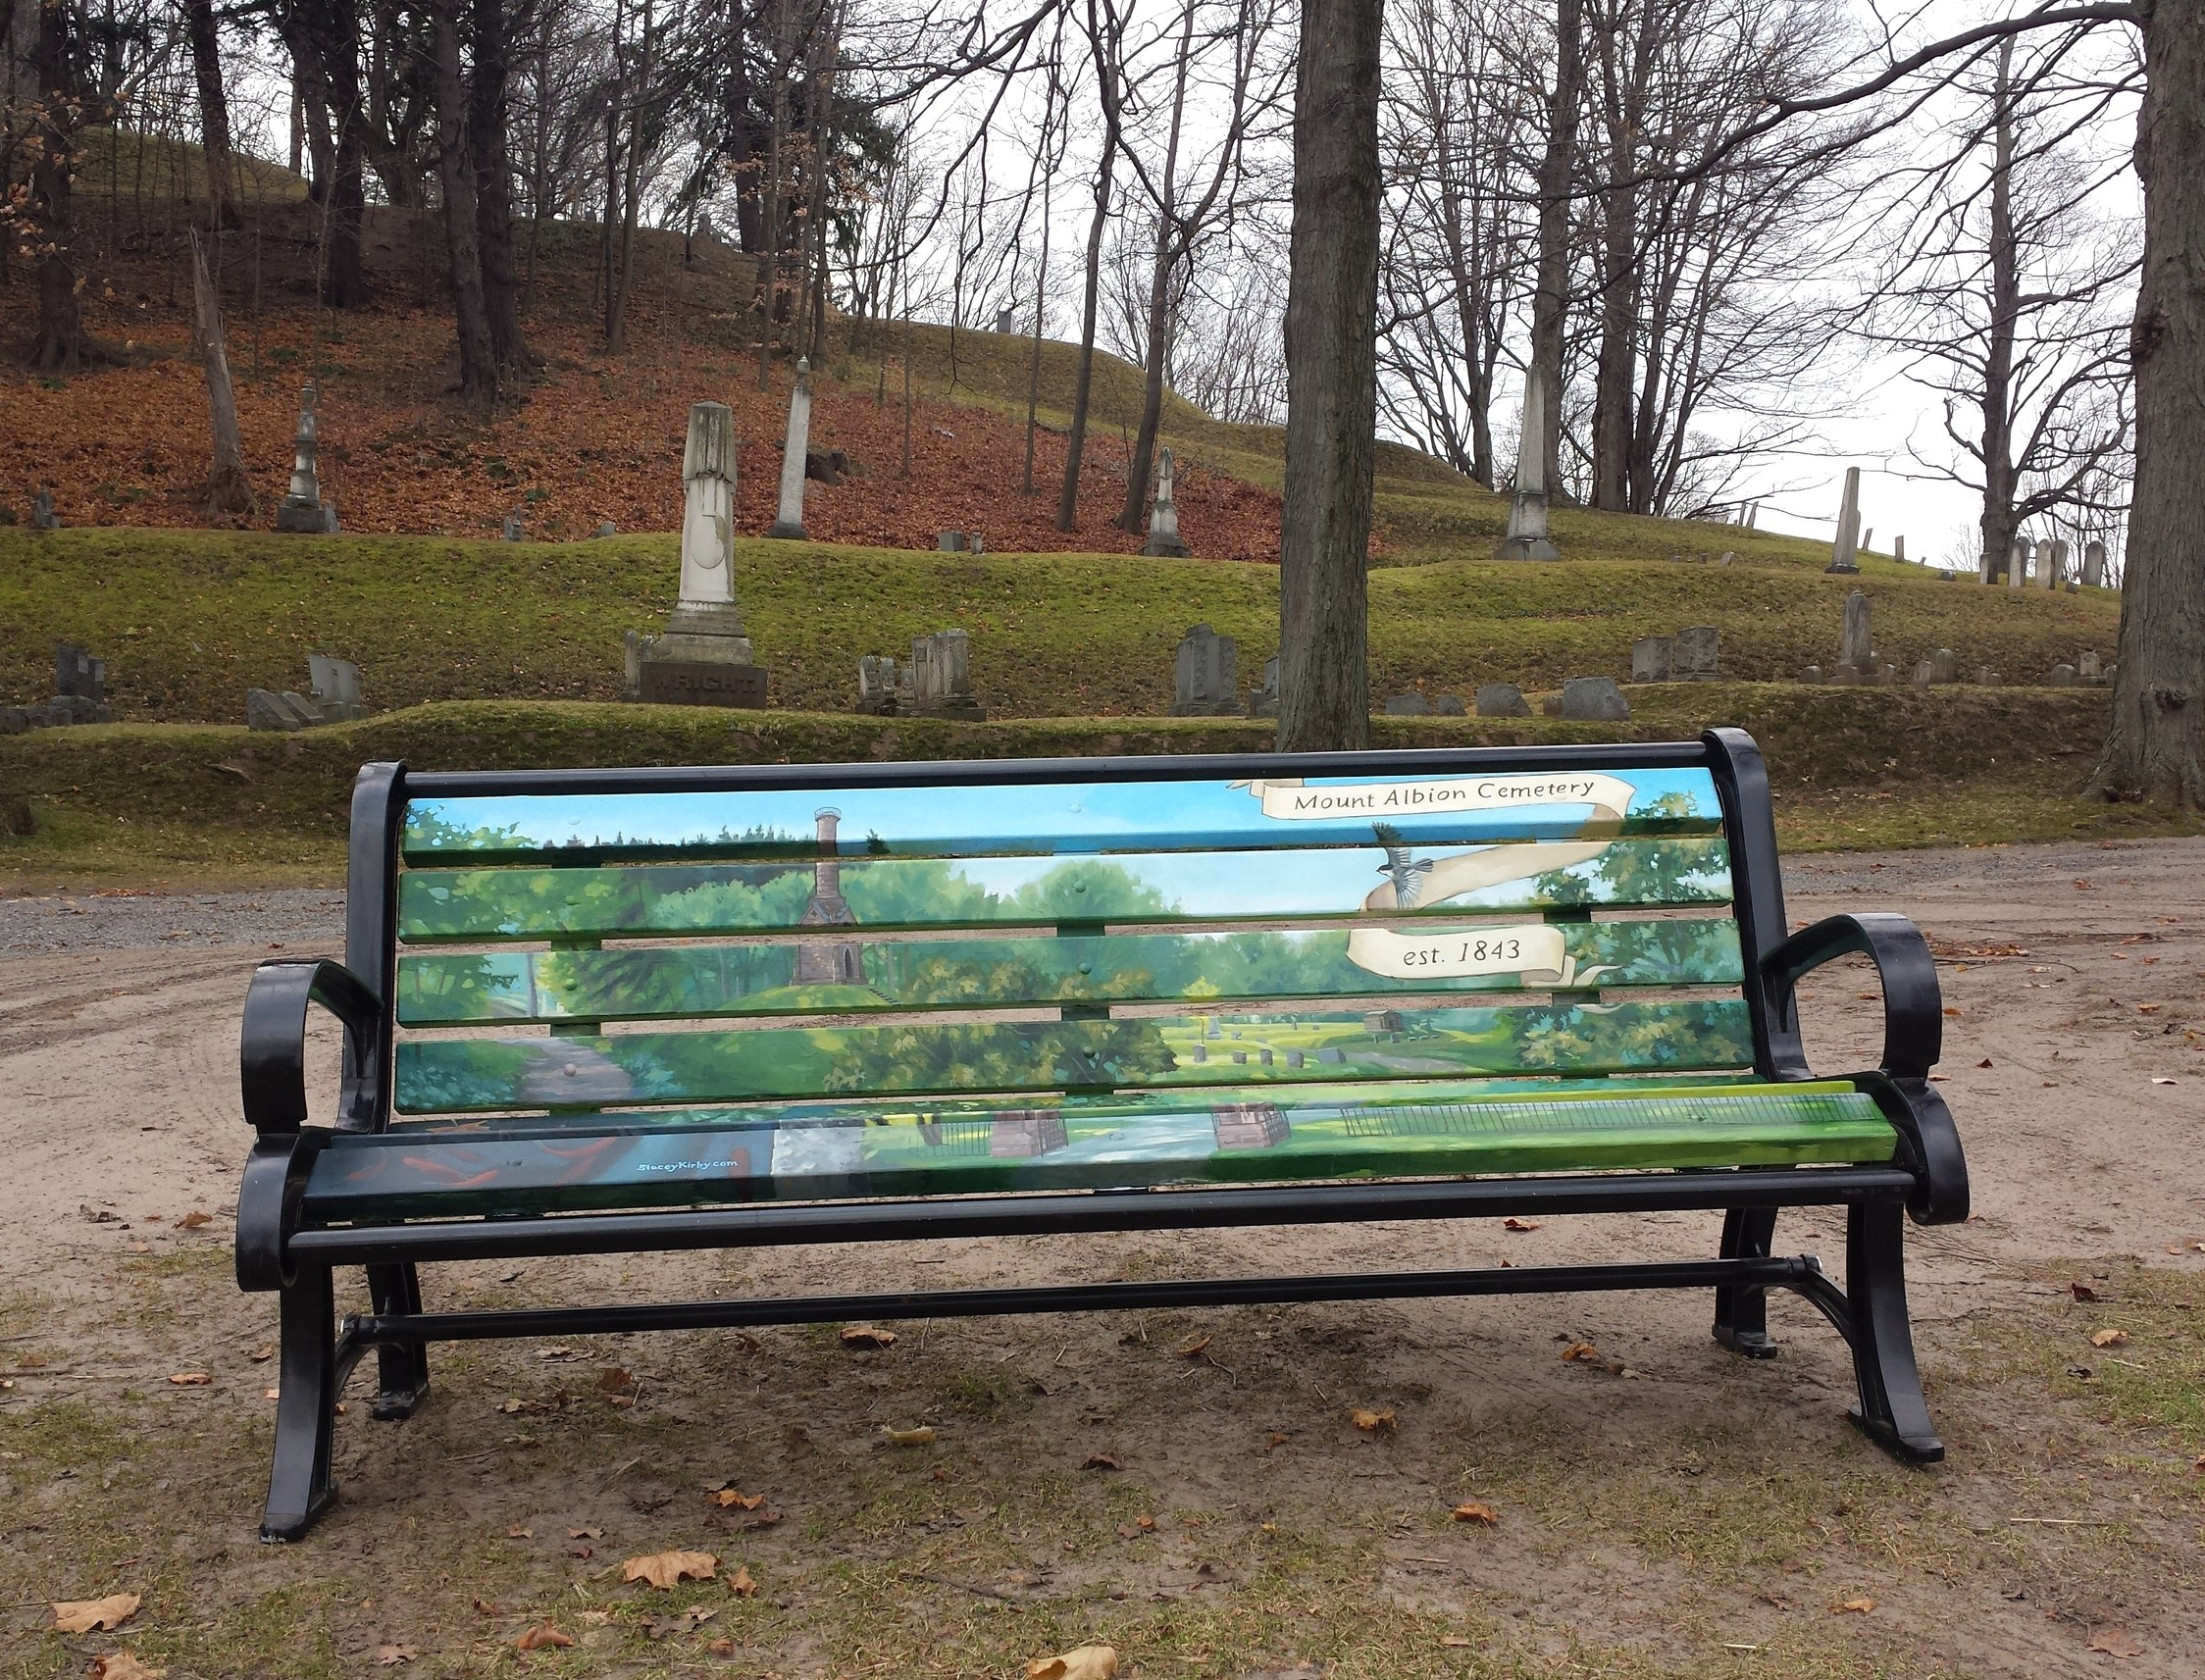 Albion Main Street Bench, Featuring Mount Albion Cemetary